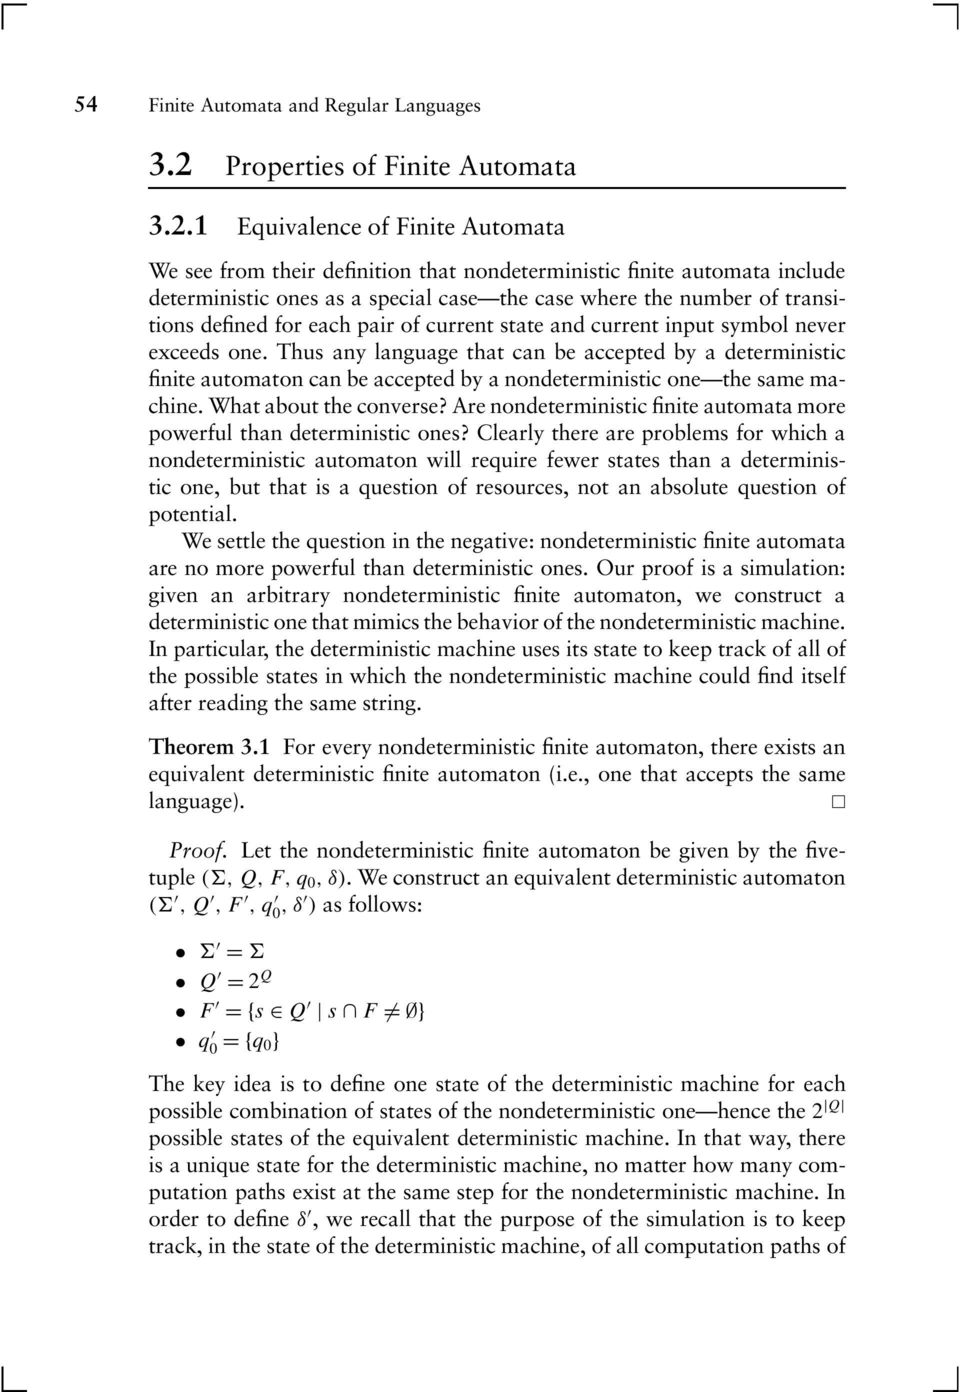 Equivalence of Finite Automata We see from their definition that nondeterministic finite automata include deterministic ones as a special case the case where the number of transitions defined for